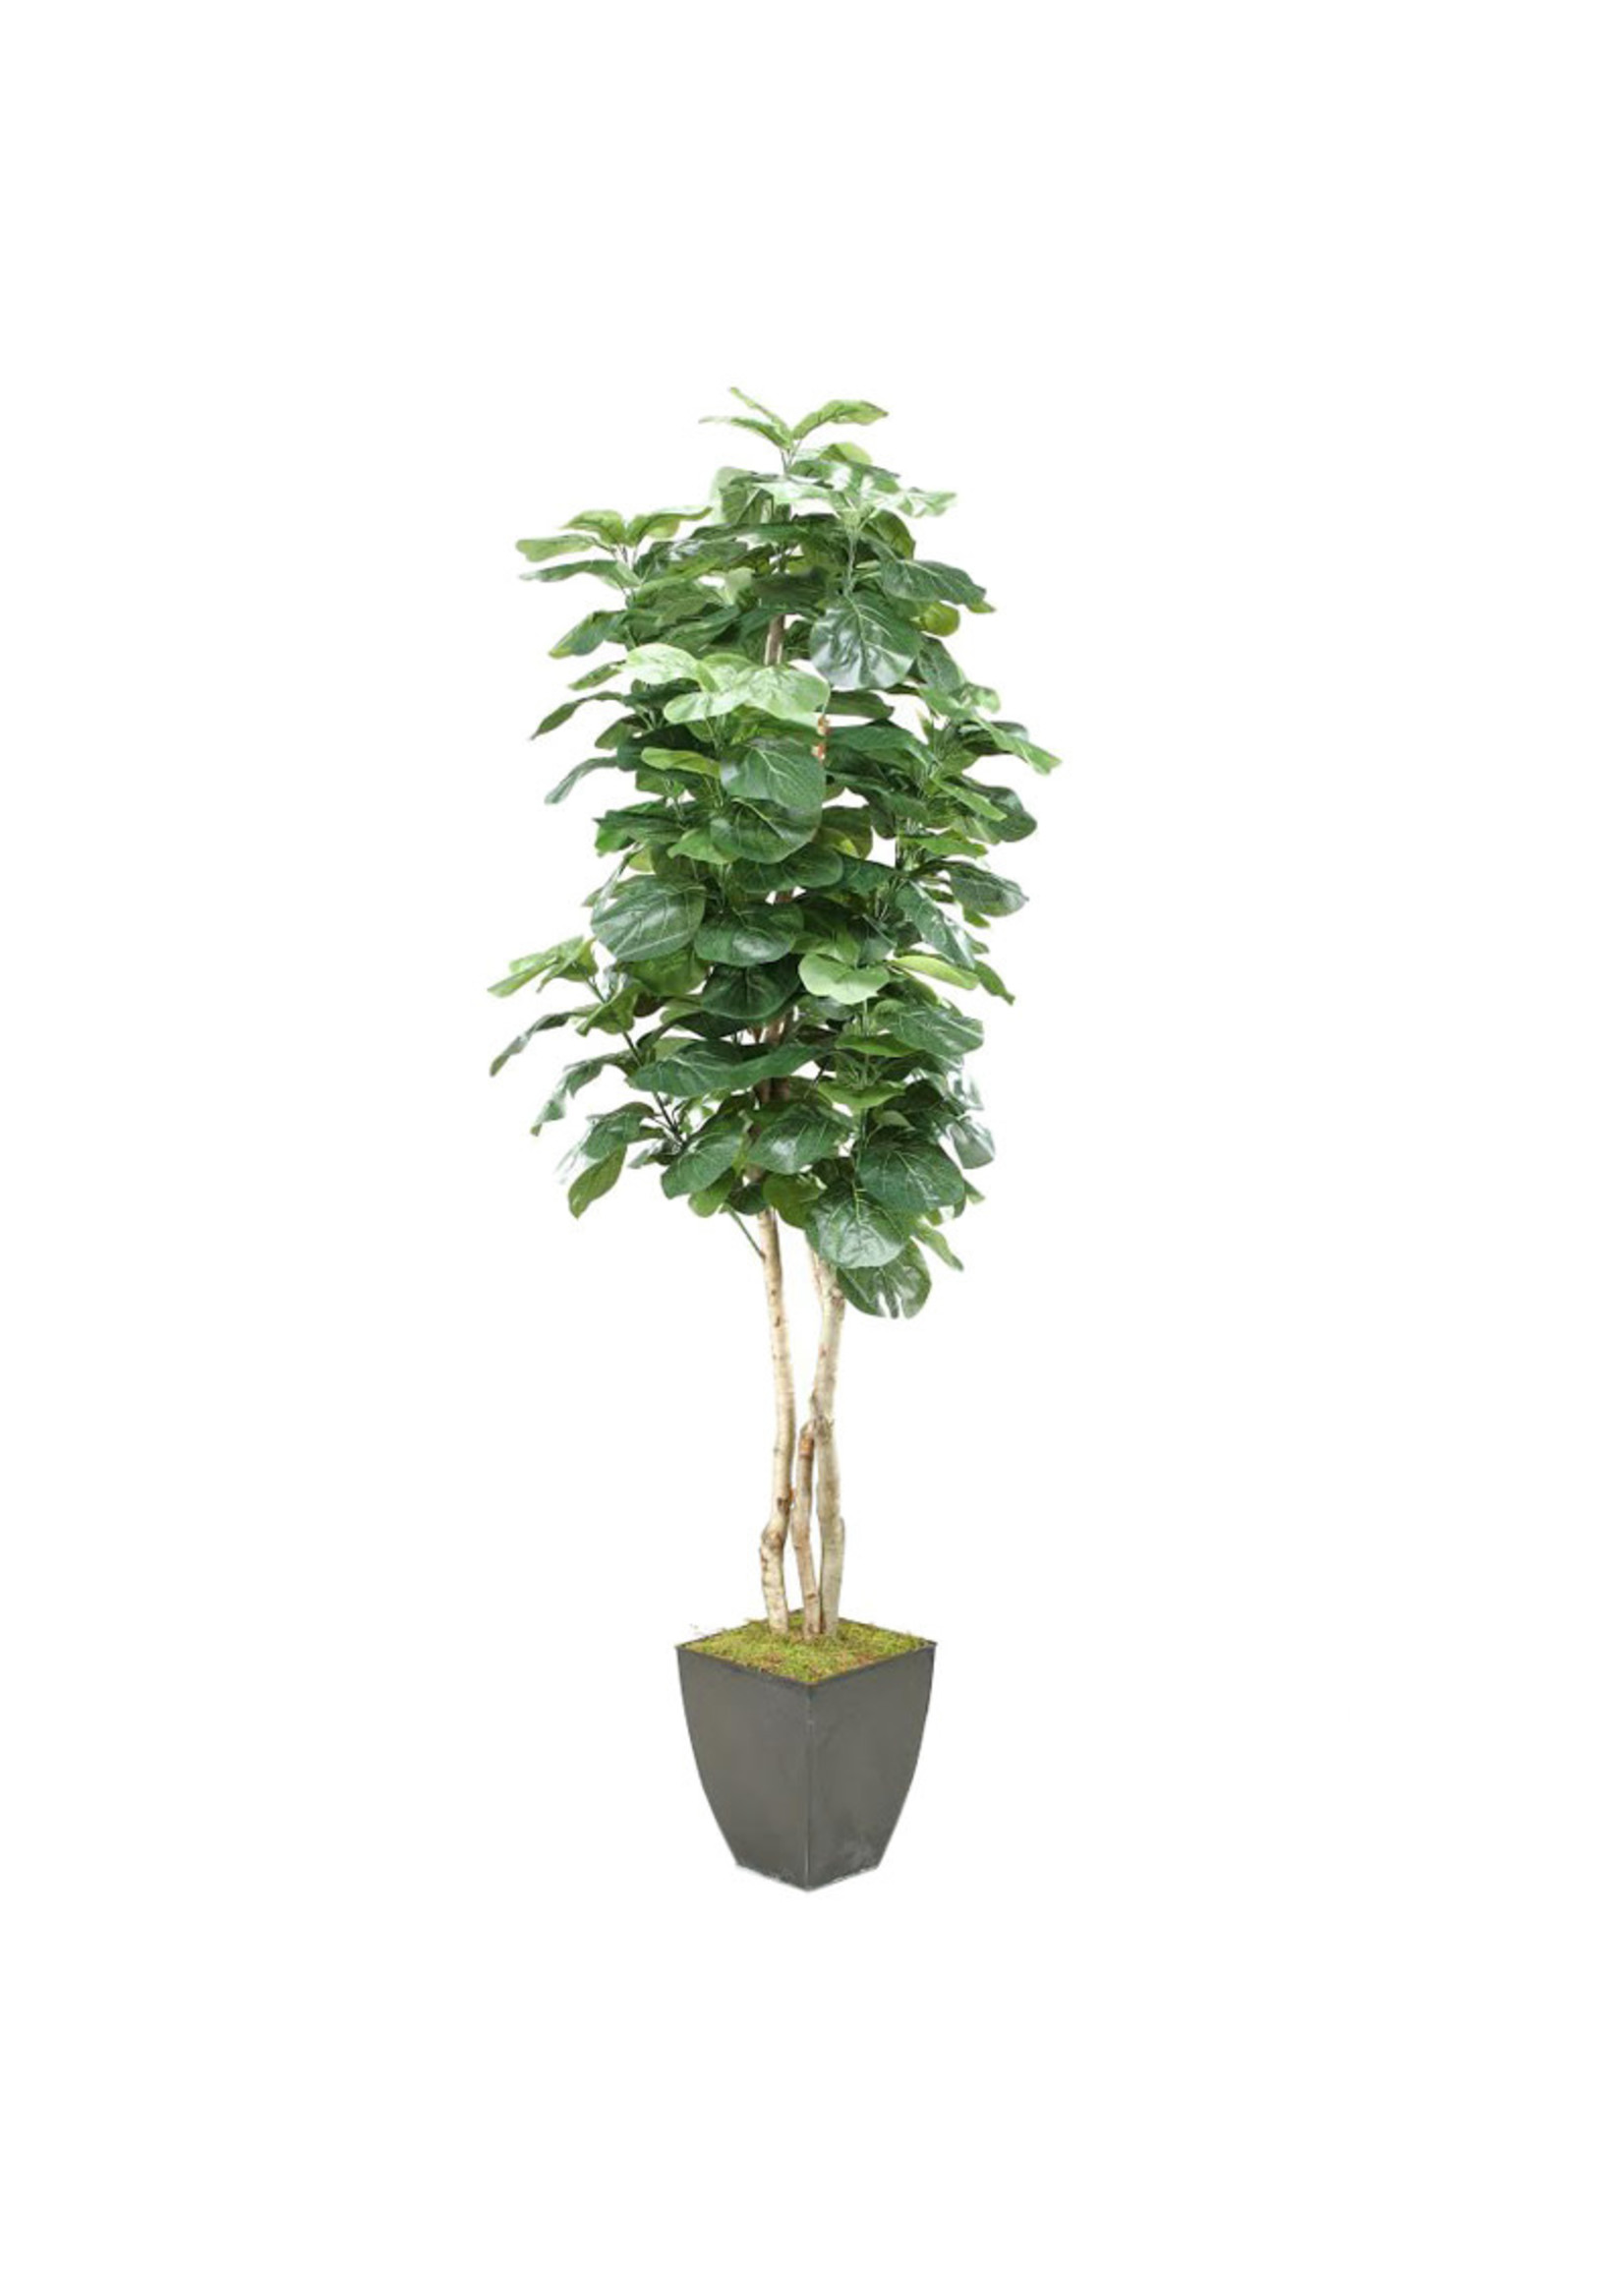 8' FIDDLE LEAF FIG IN SQUARE CONTAINER